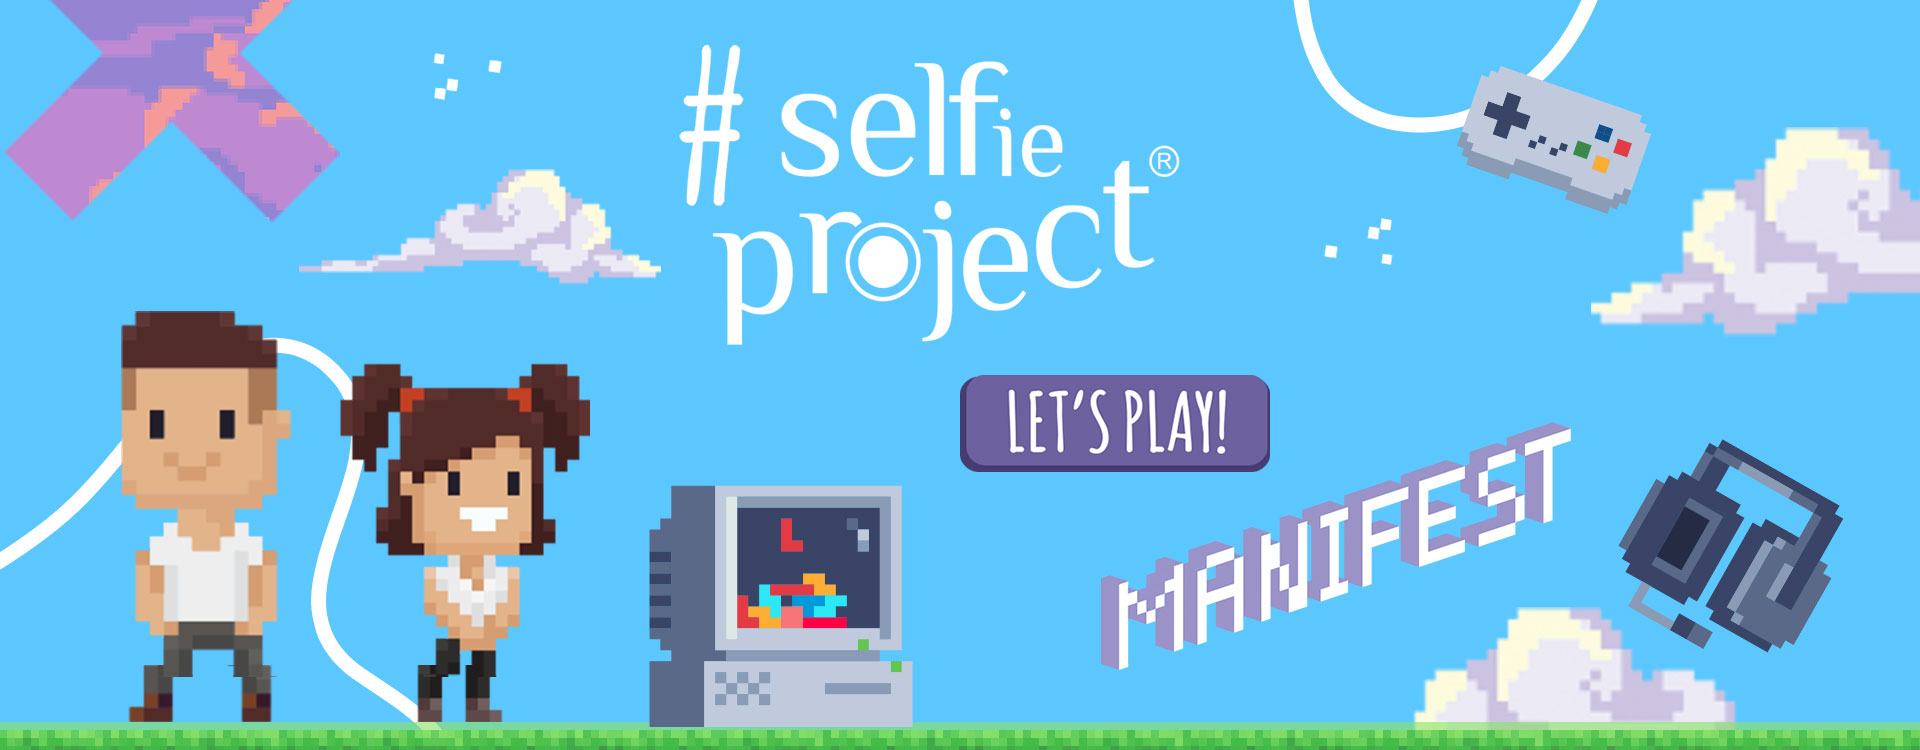 #SelfieProject #Manifest